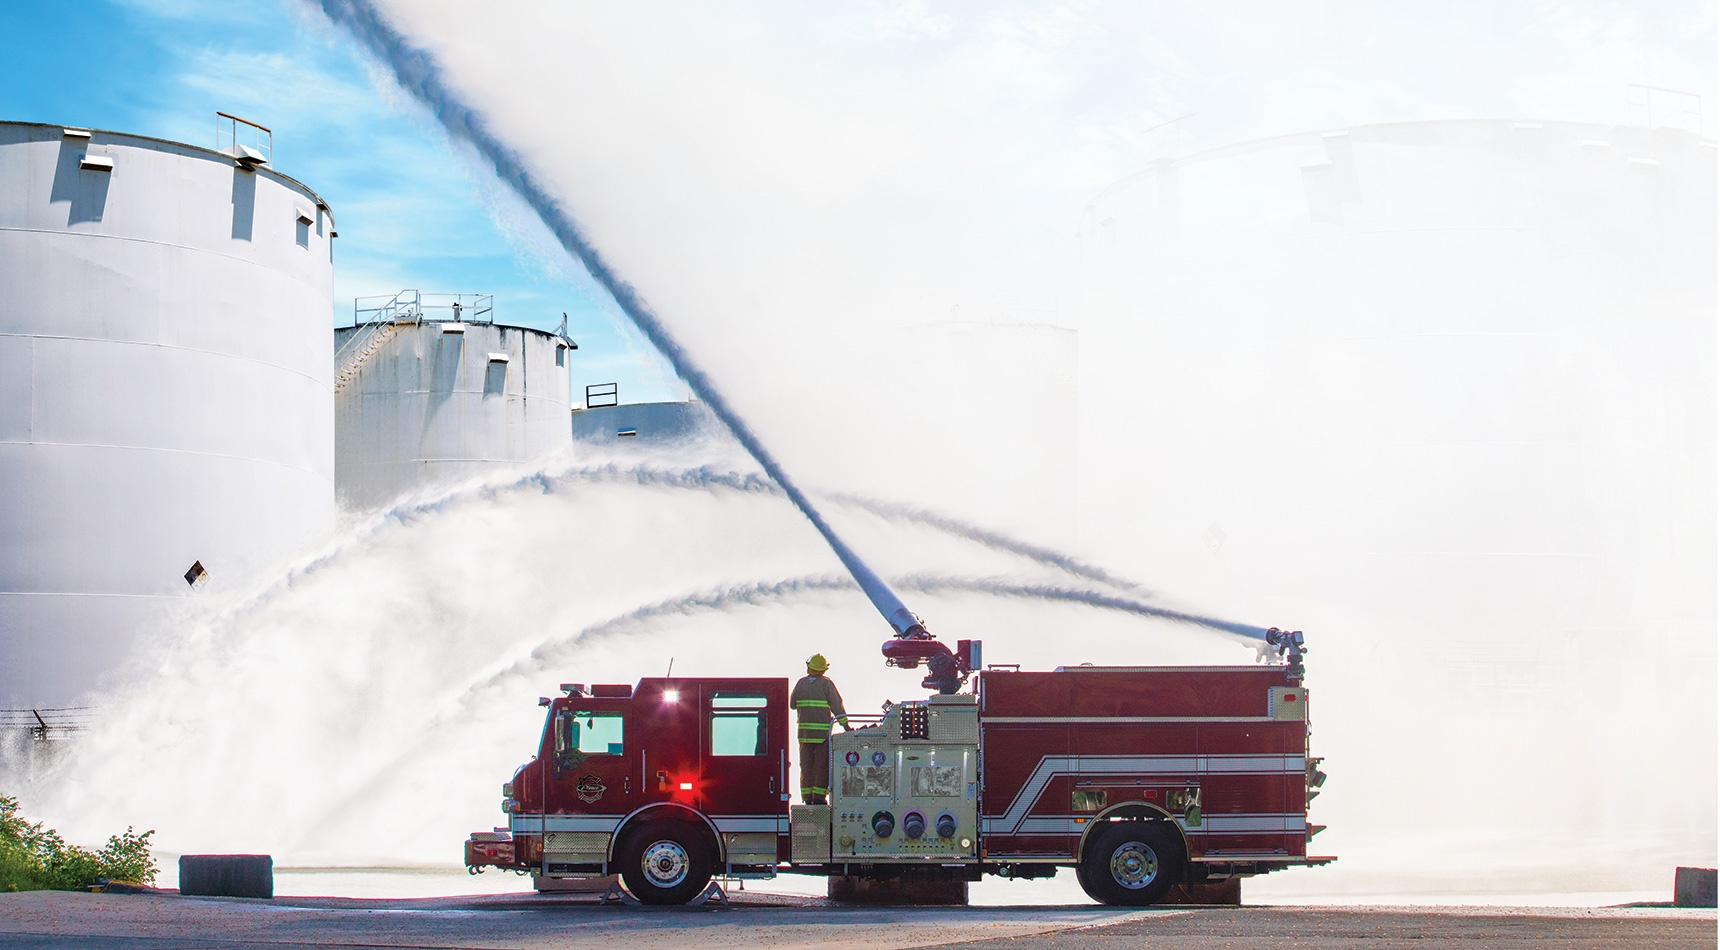 Pierce-Introduces-High-Flow-Industrial-Fire-Apparatus-at-Fire-Rescue-International-2017_Header.jpg